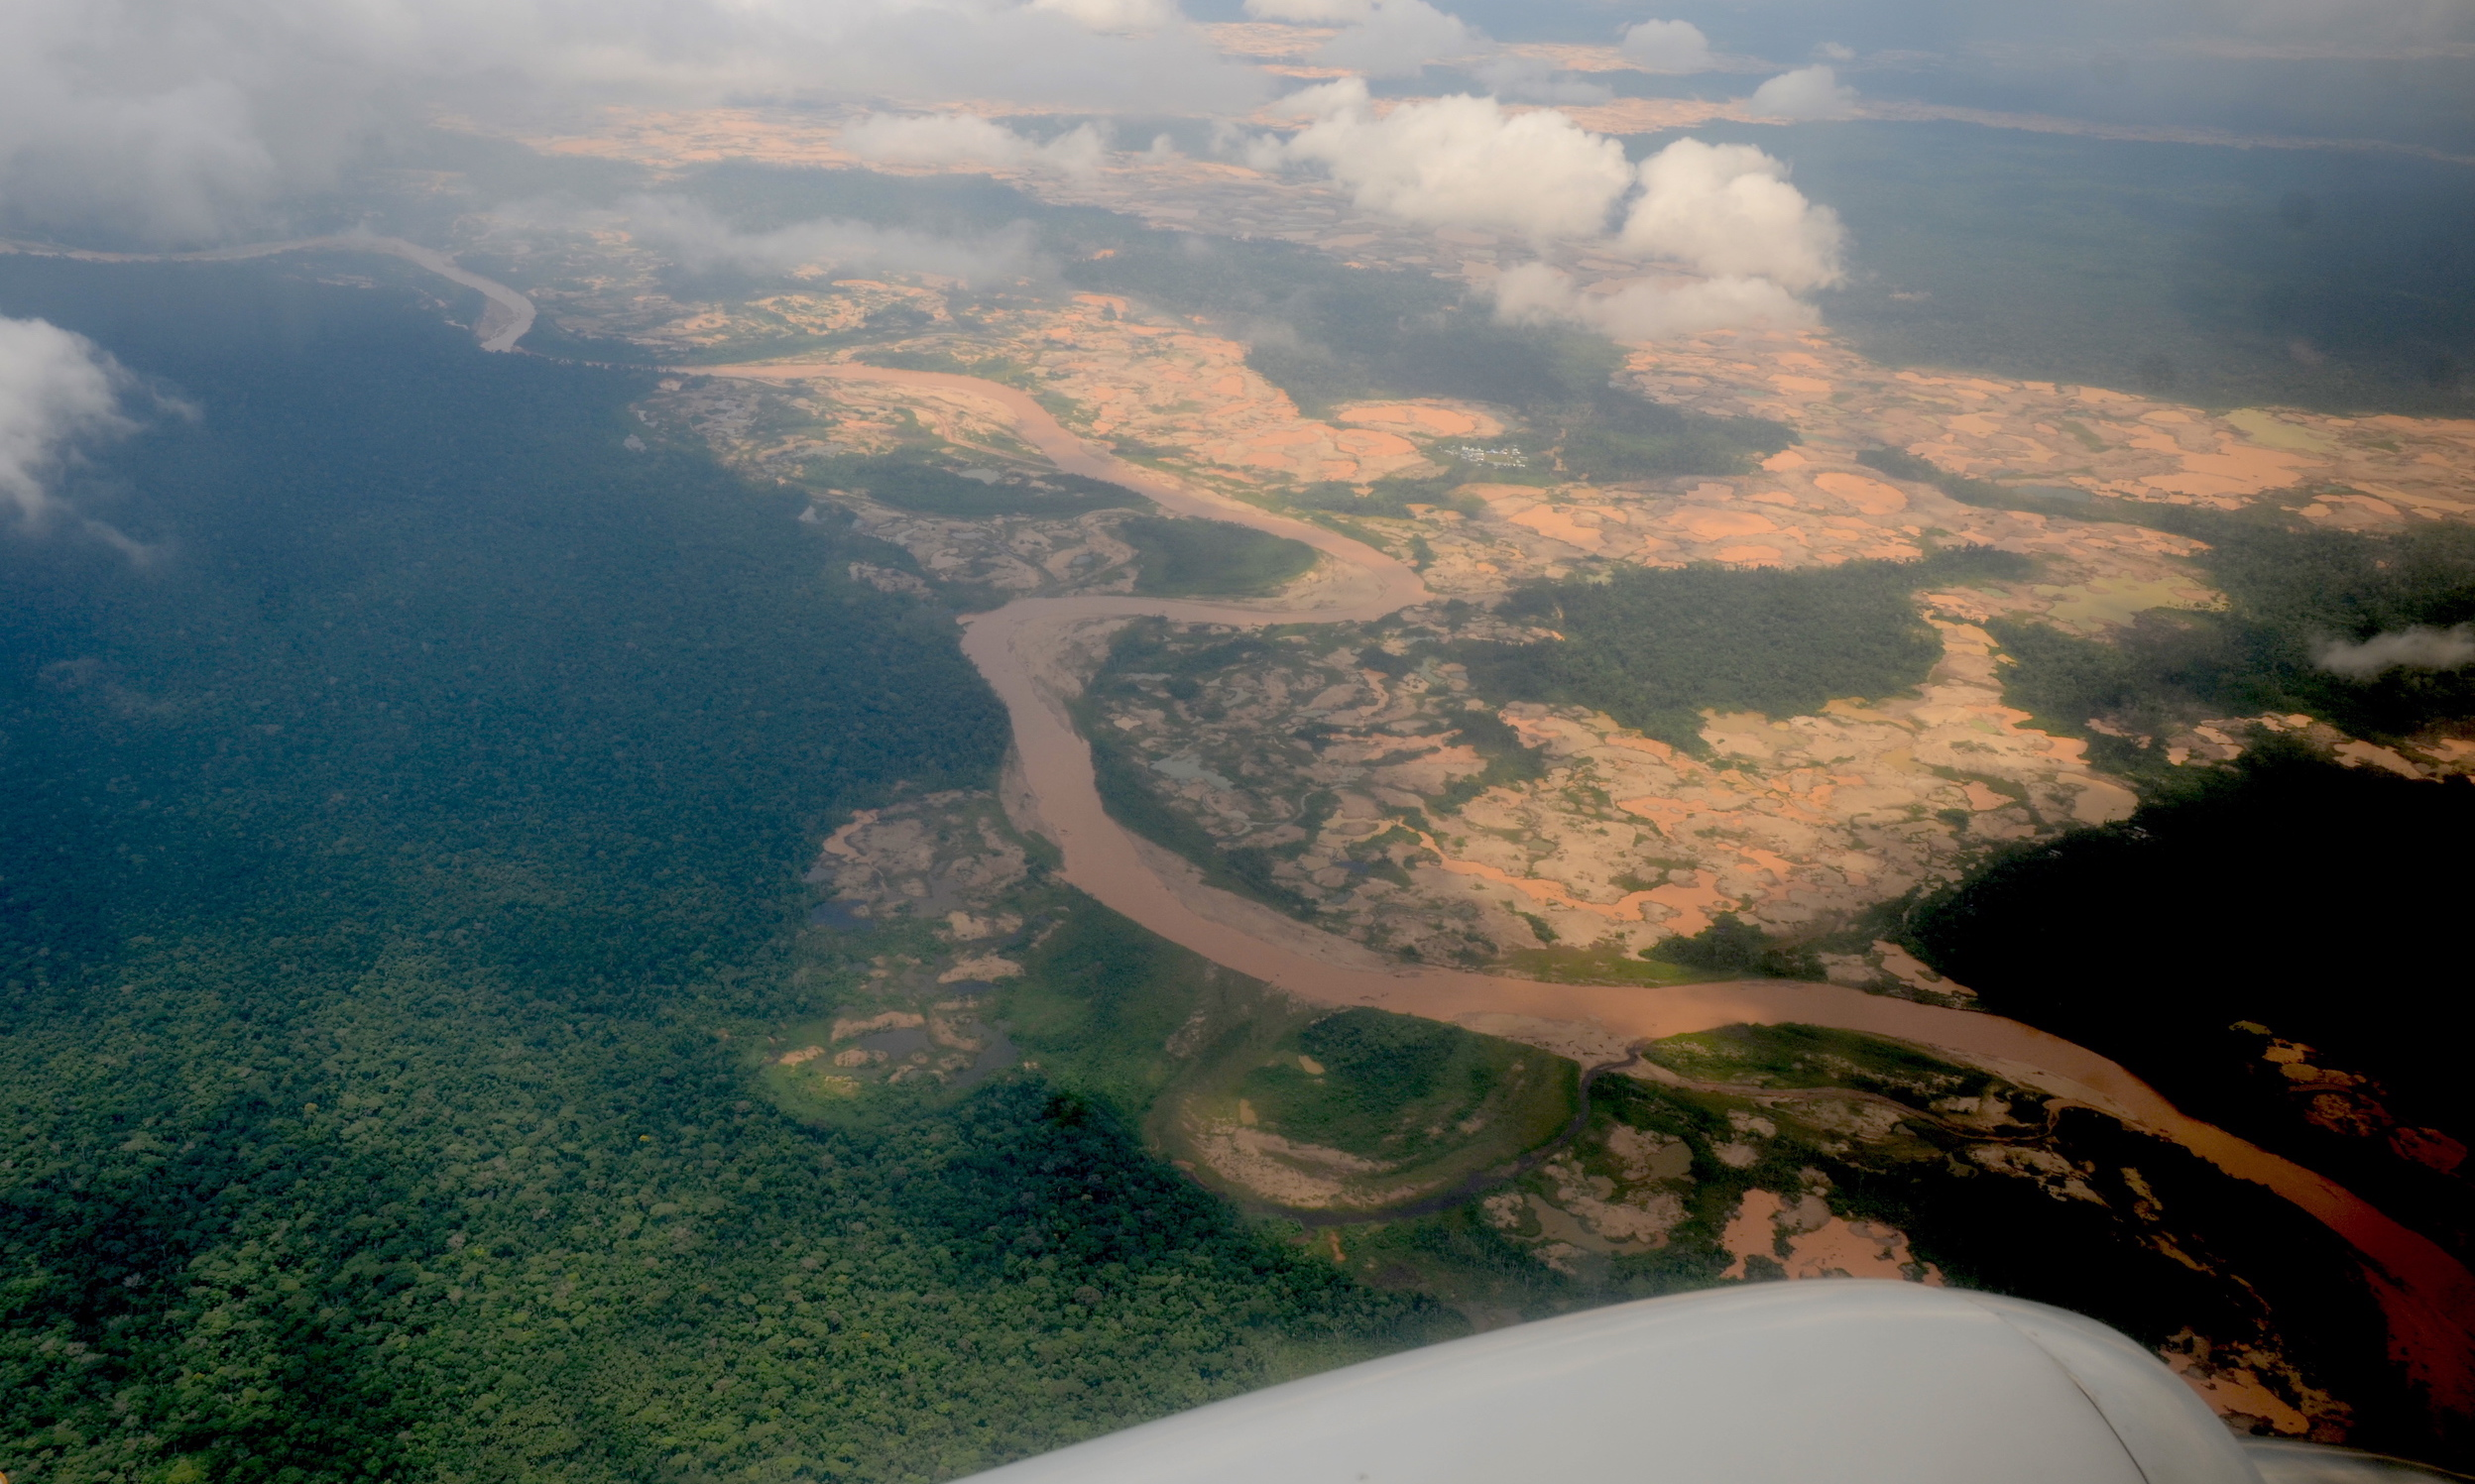 From the air, the devastating effects of illegal gold mining are apparent on both sides of the Malinowski River in Tambopata National Reserve. Image by Yvette Sierra Praeli.